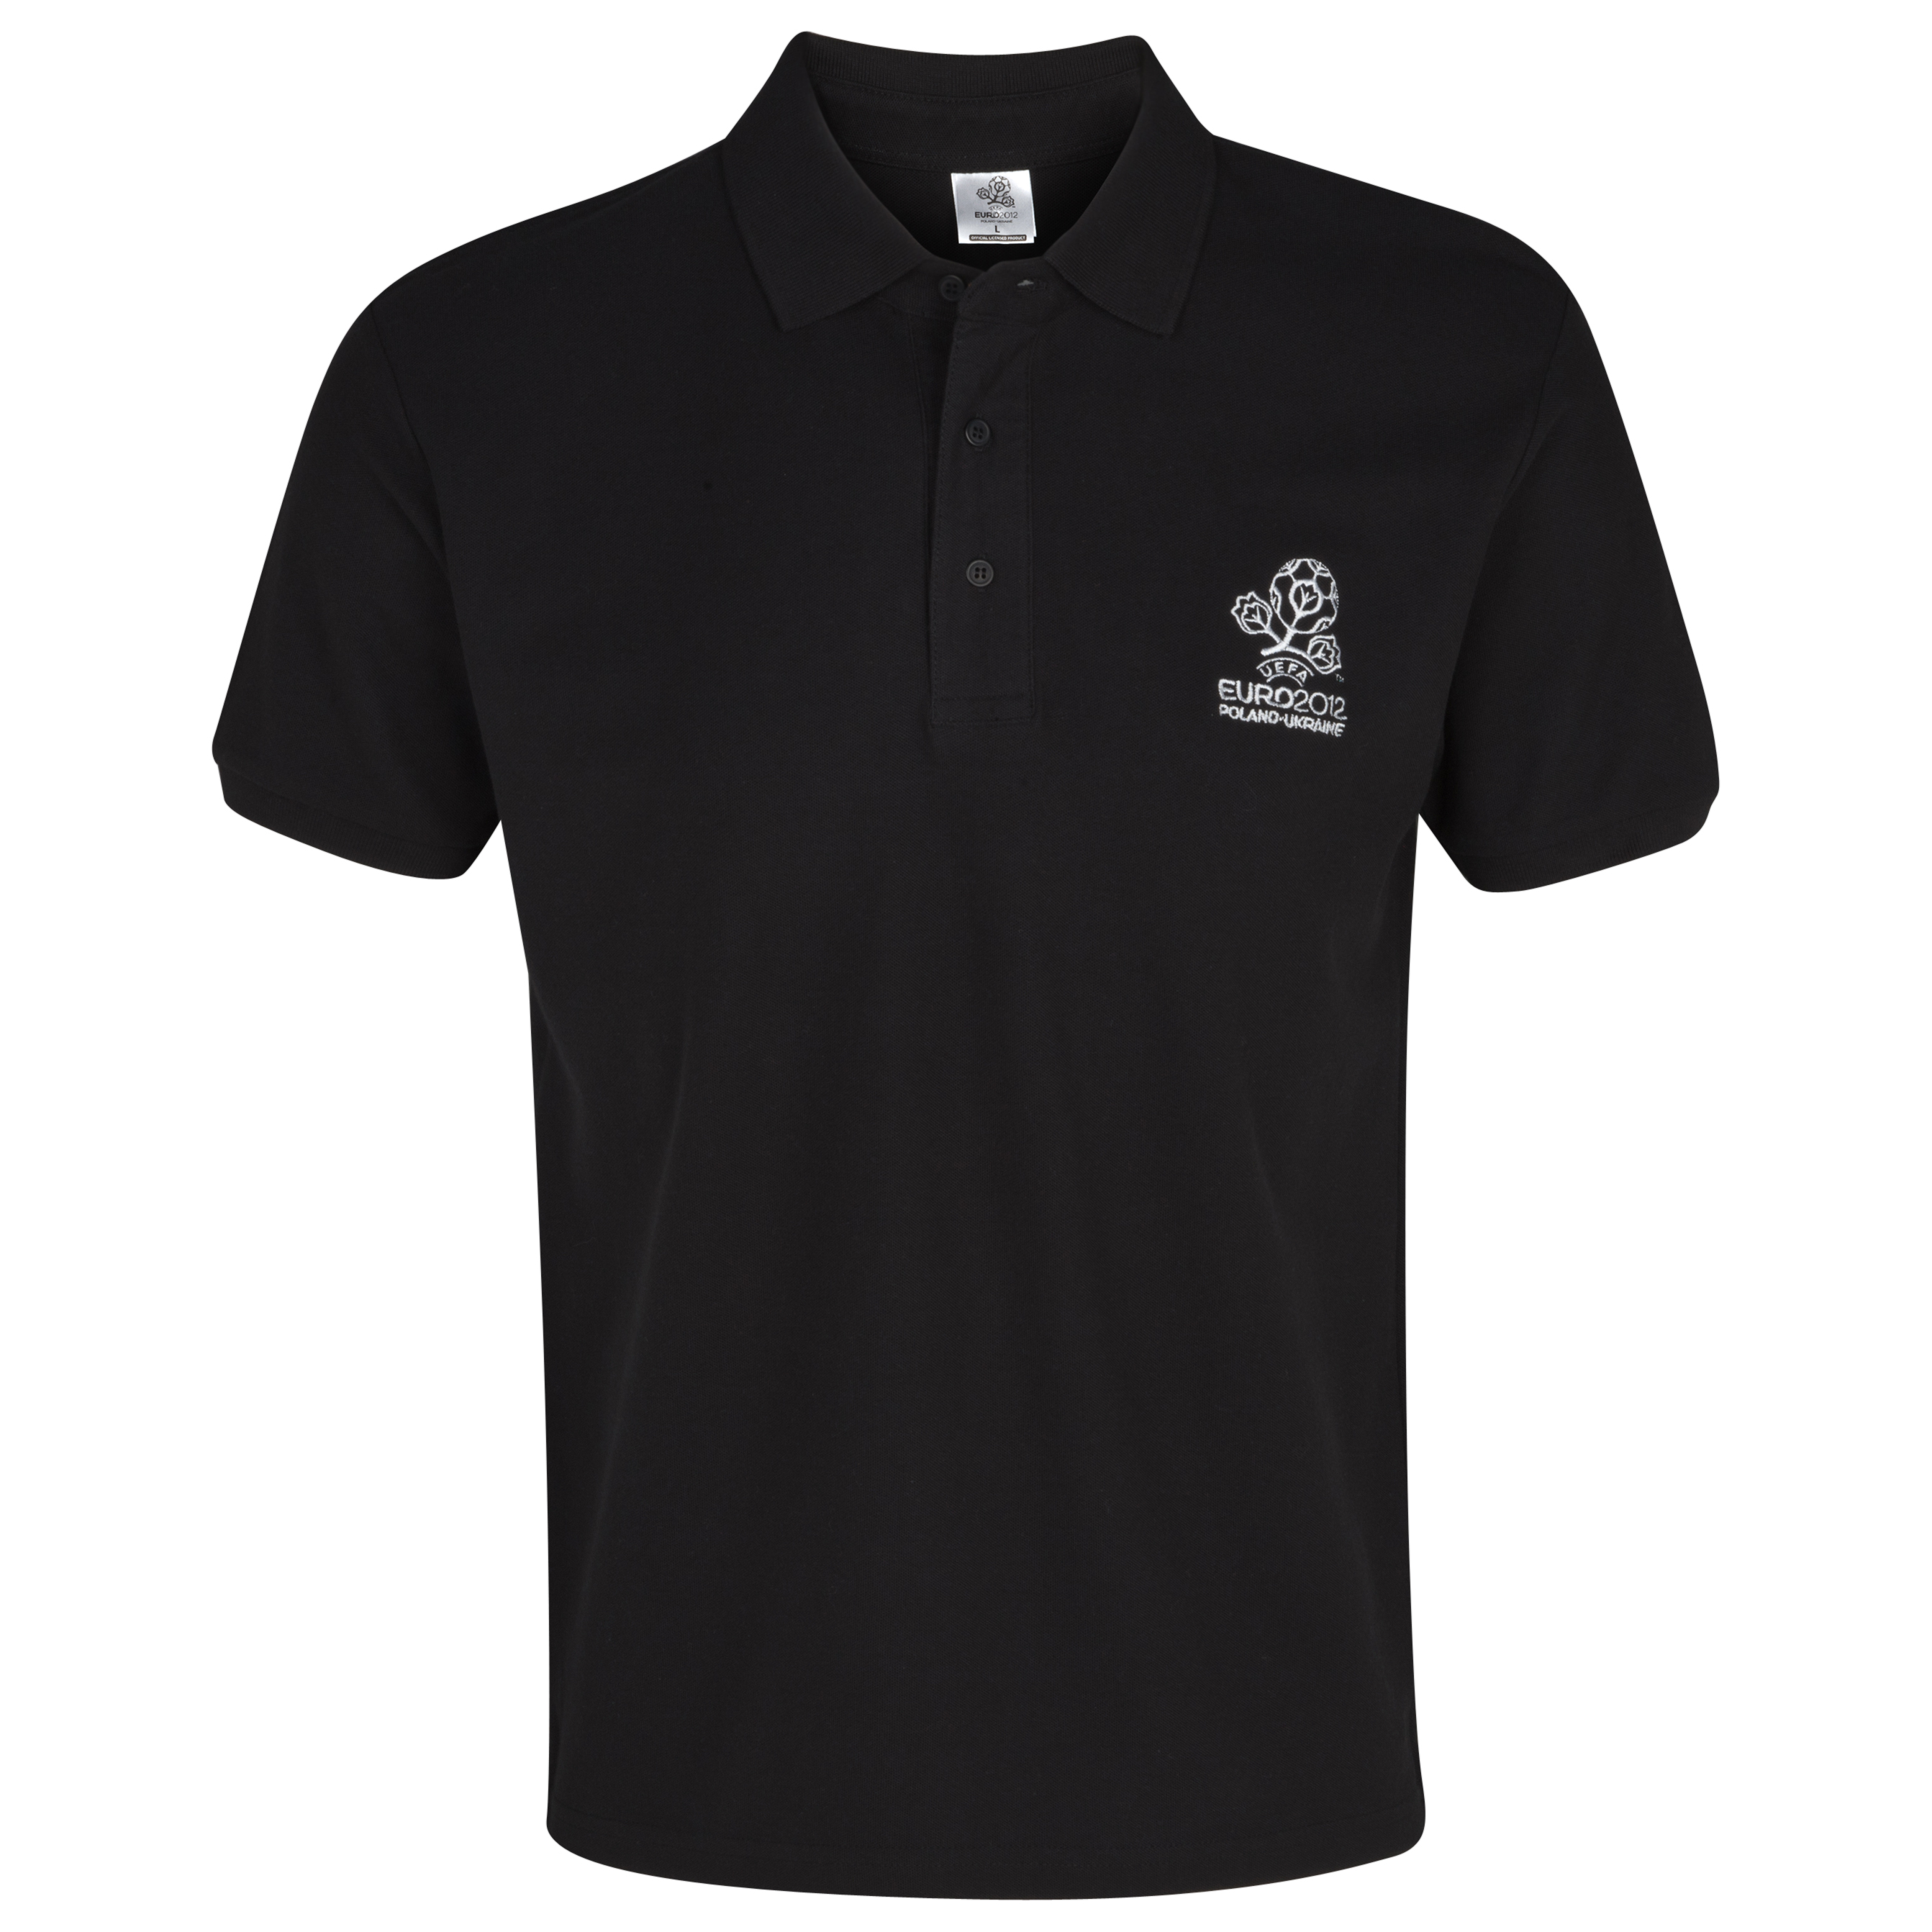 Euro 2012 Tonal Polo - Black/White